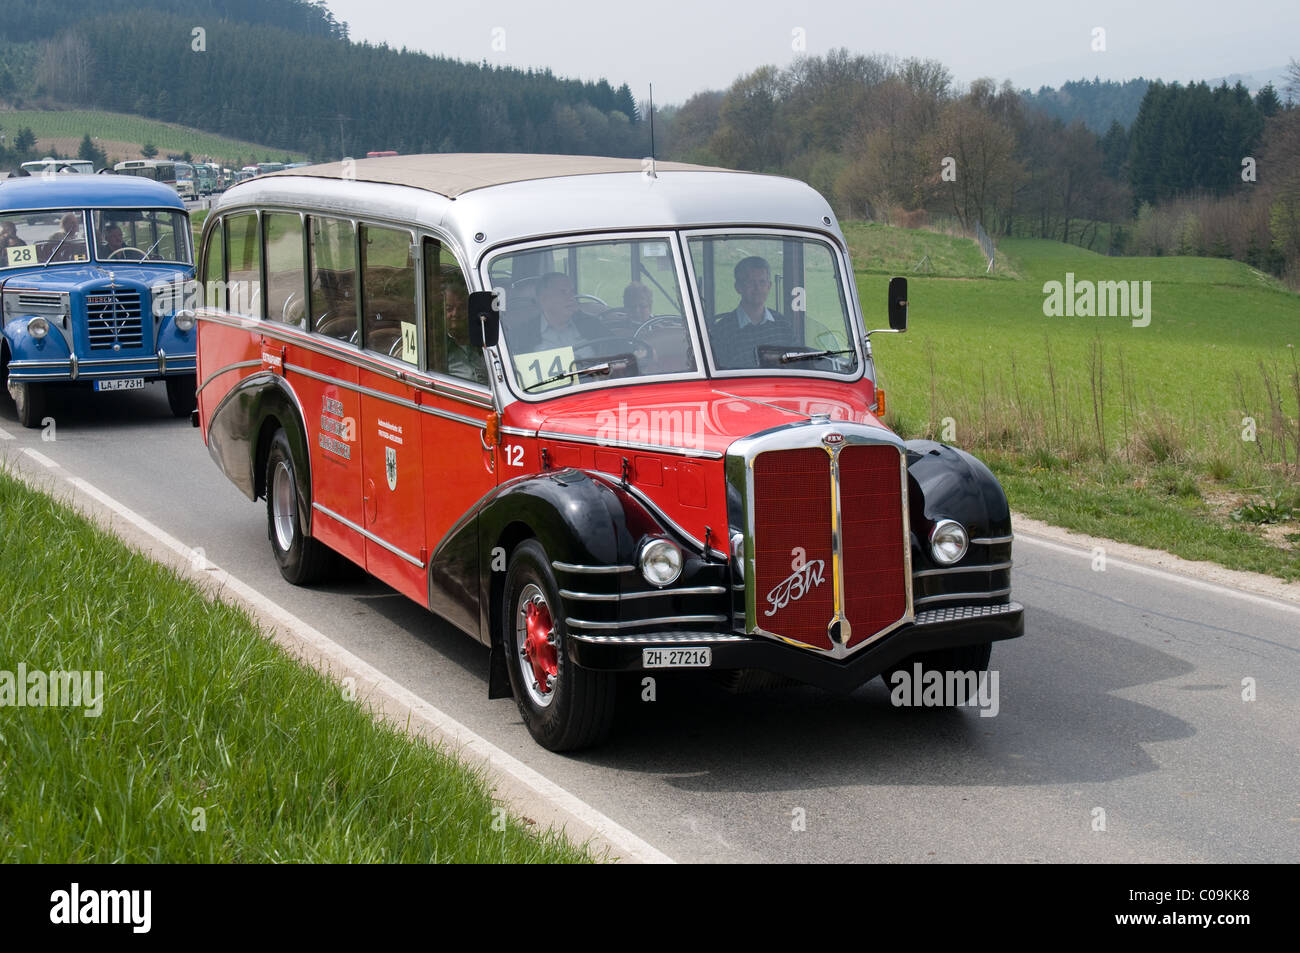 A historic FBW vehicle from Switzerland takes part in a road run through Austria for oldtimer buses. - Stock Image